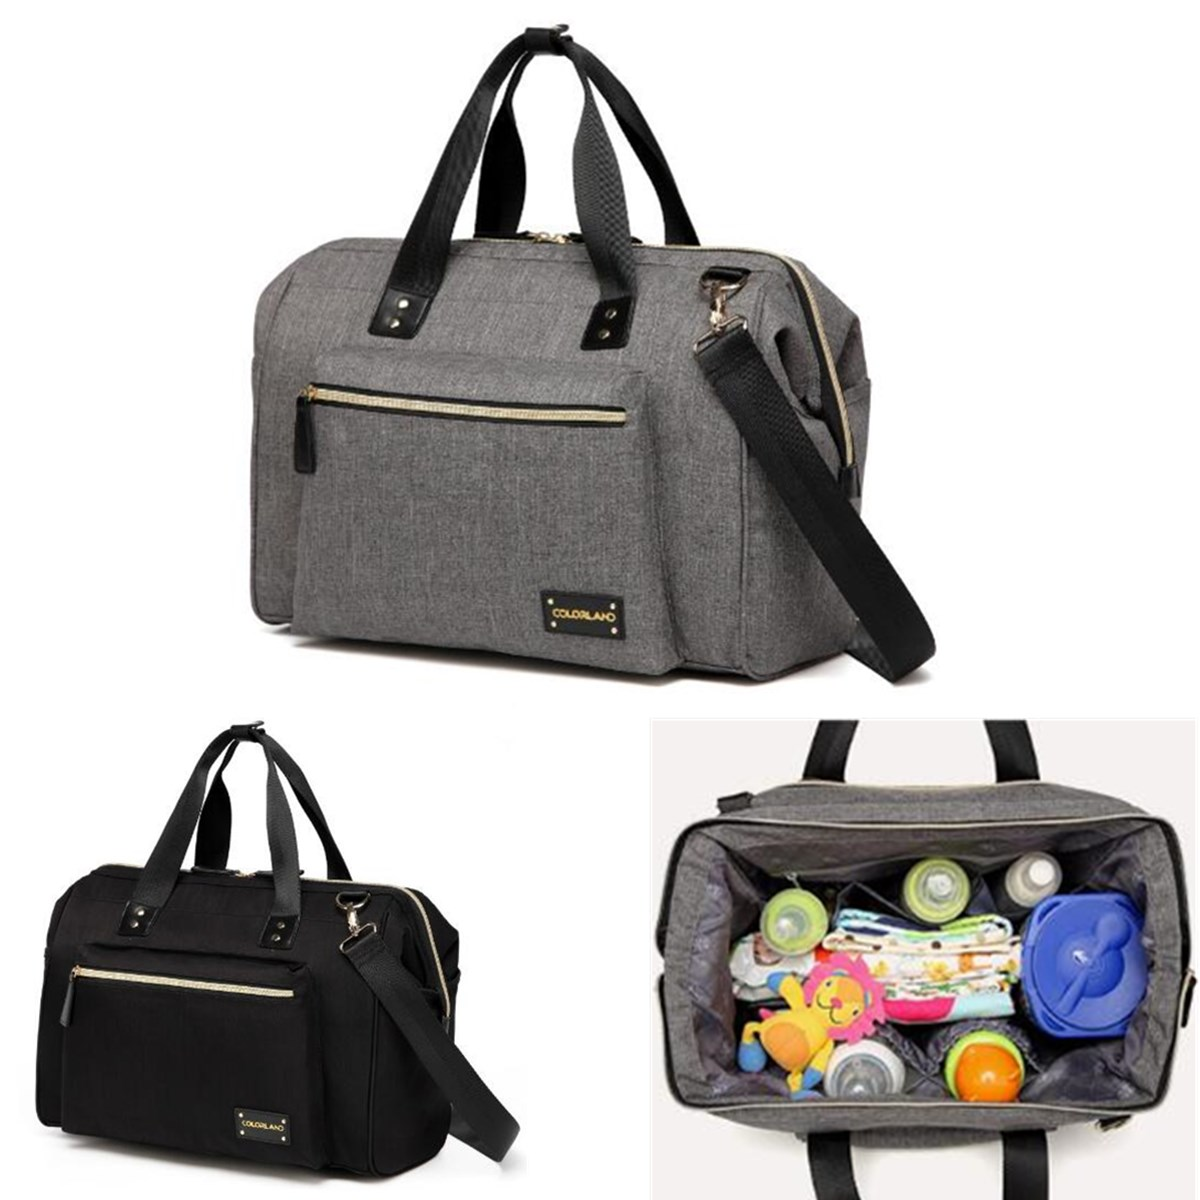 Multifunction Diaper Nappy Bags Baby Travel Mummy Shoulder Bag Crossbody Handbag